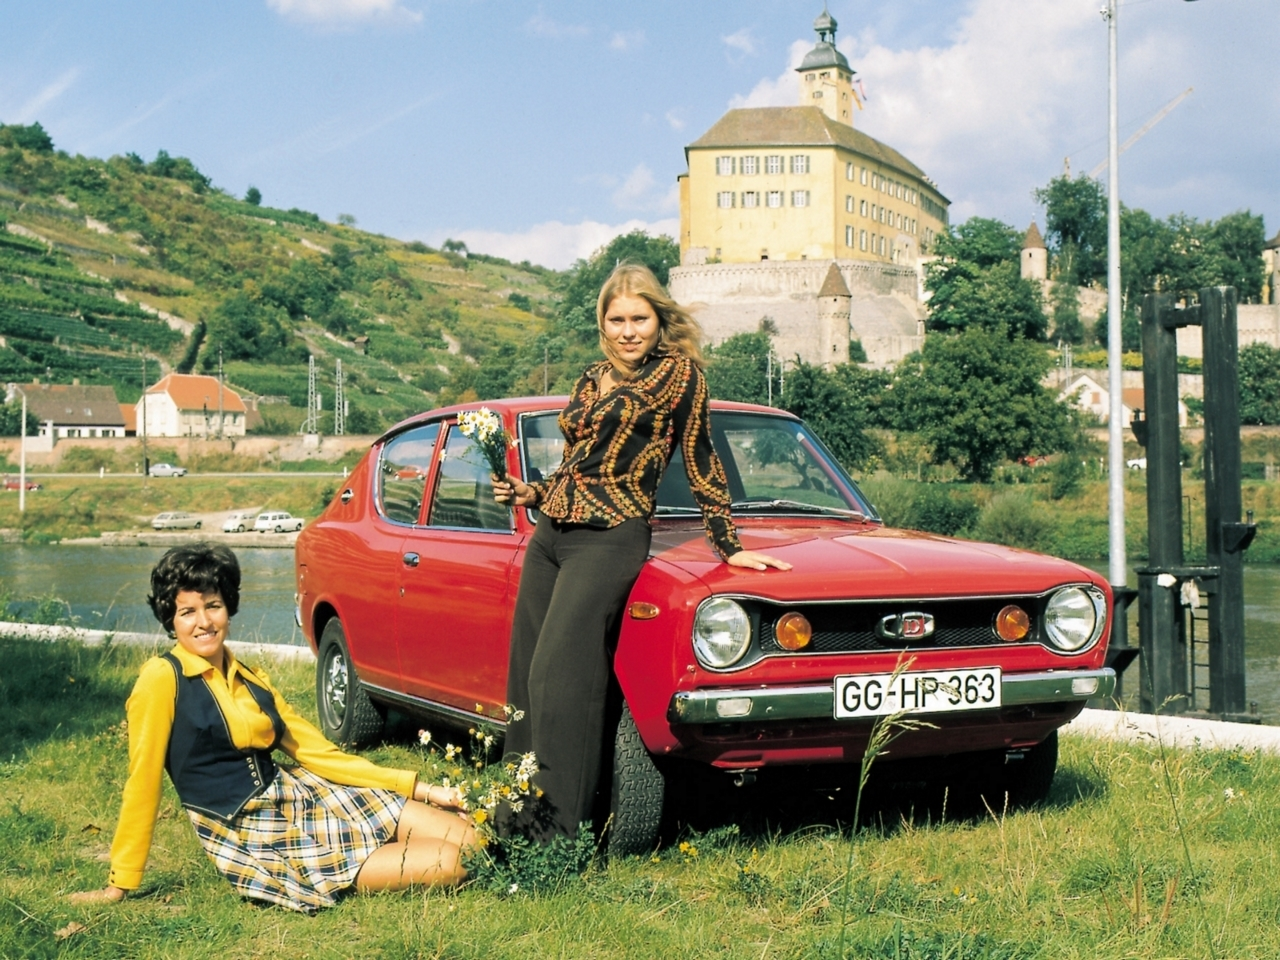 citroen dyane rally with 1974 Best Selling Cars West Germany on 181622 likewise La Historia De Pegaso I additionally Watch as well Tableau De Bord furthermore 2013 6 sedan.